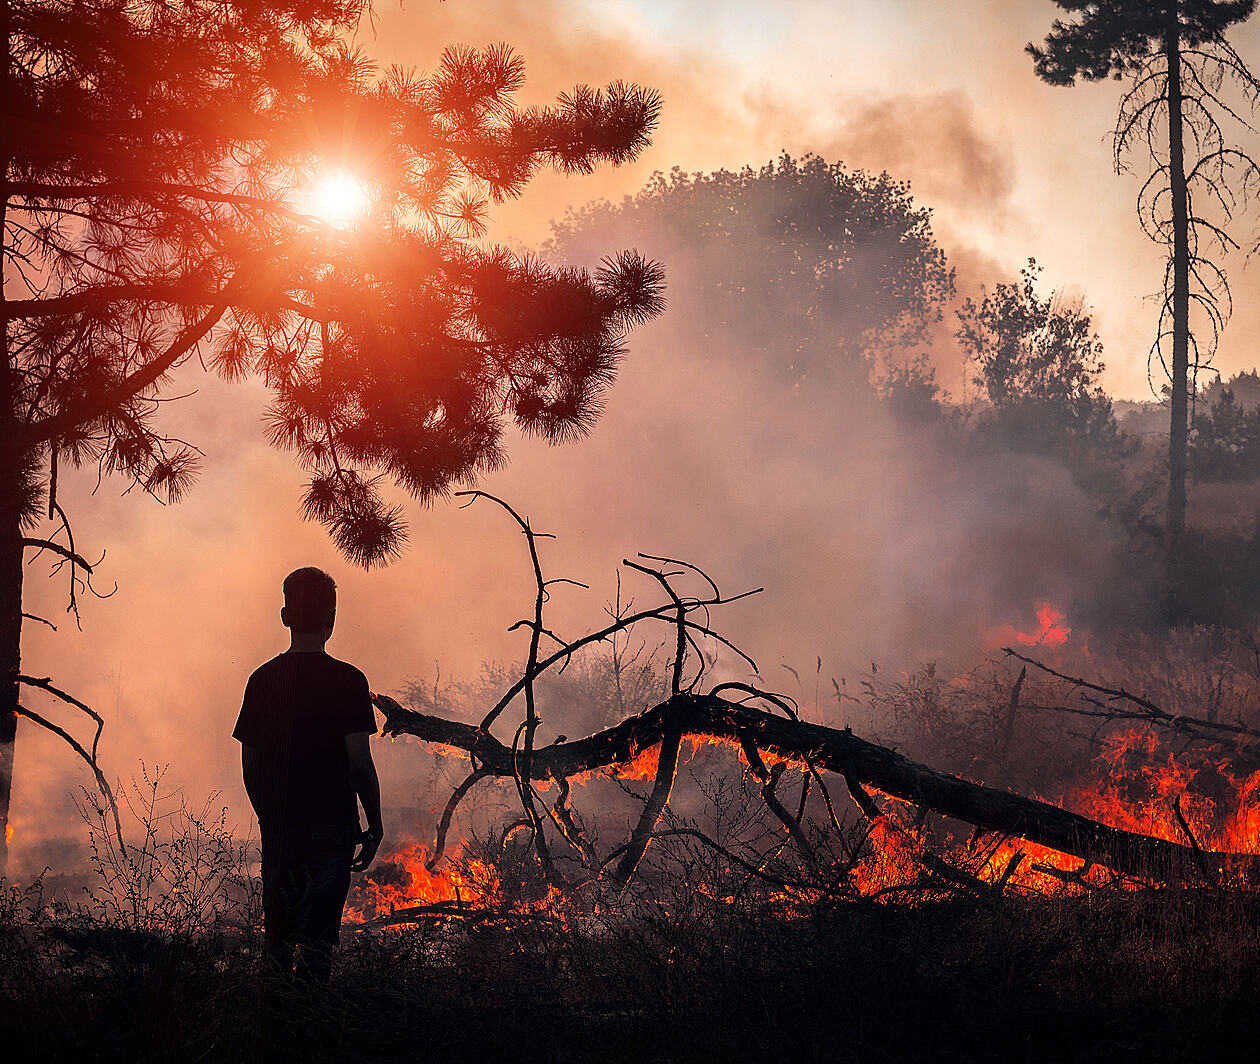 Bushfires: Response, Relief and Resilience